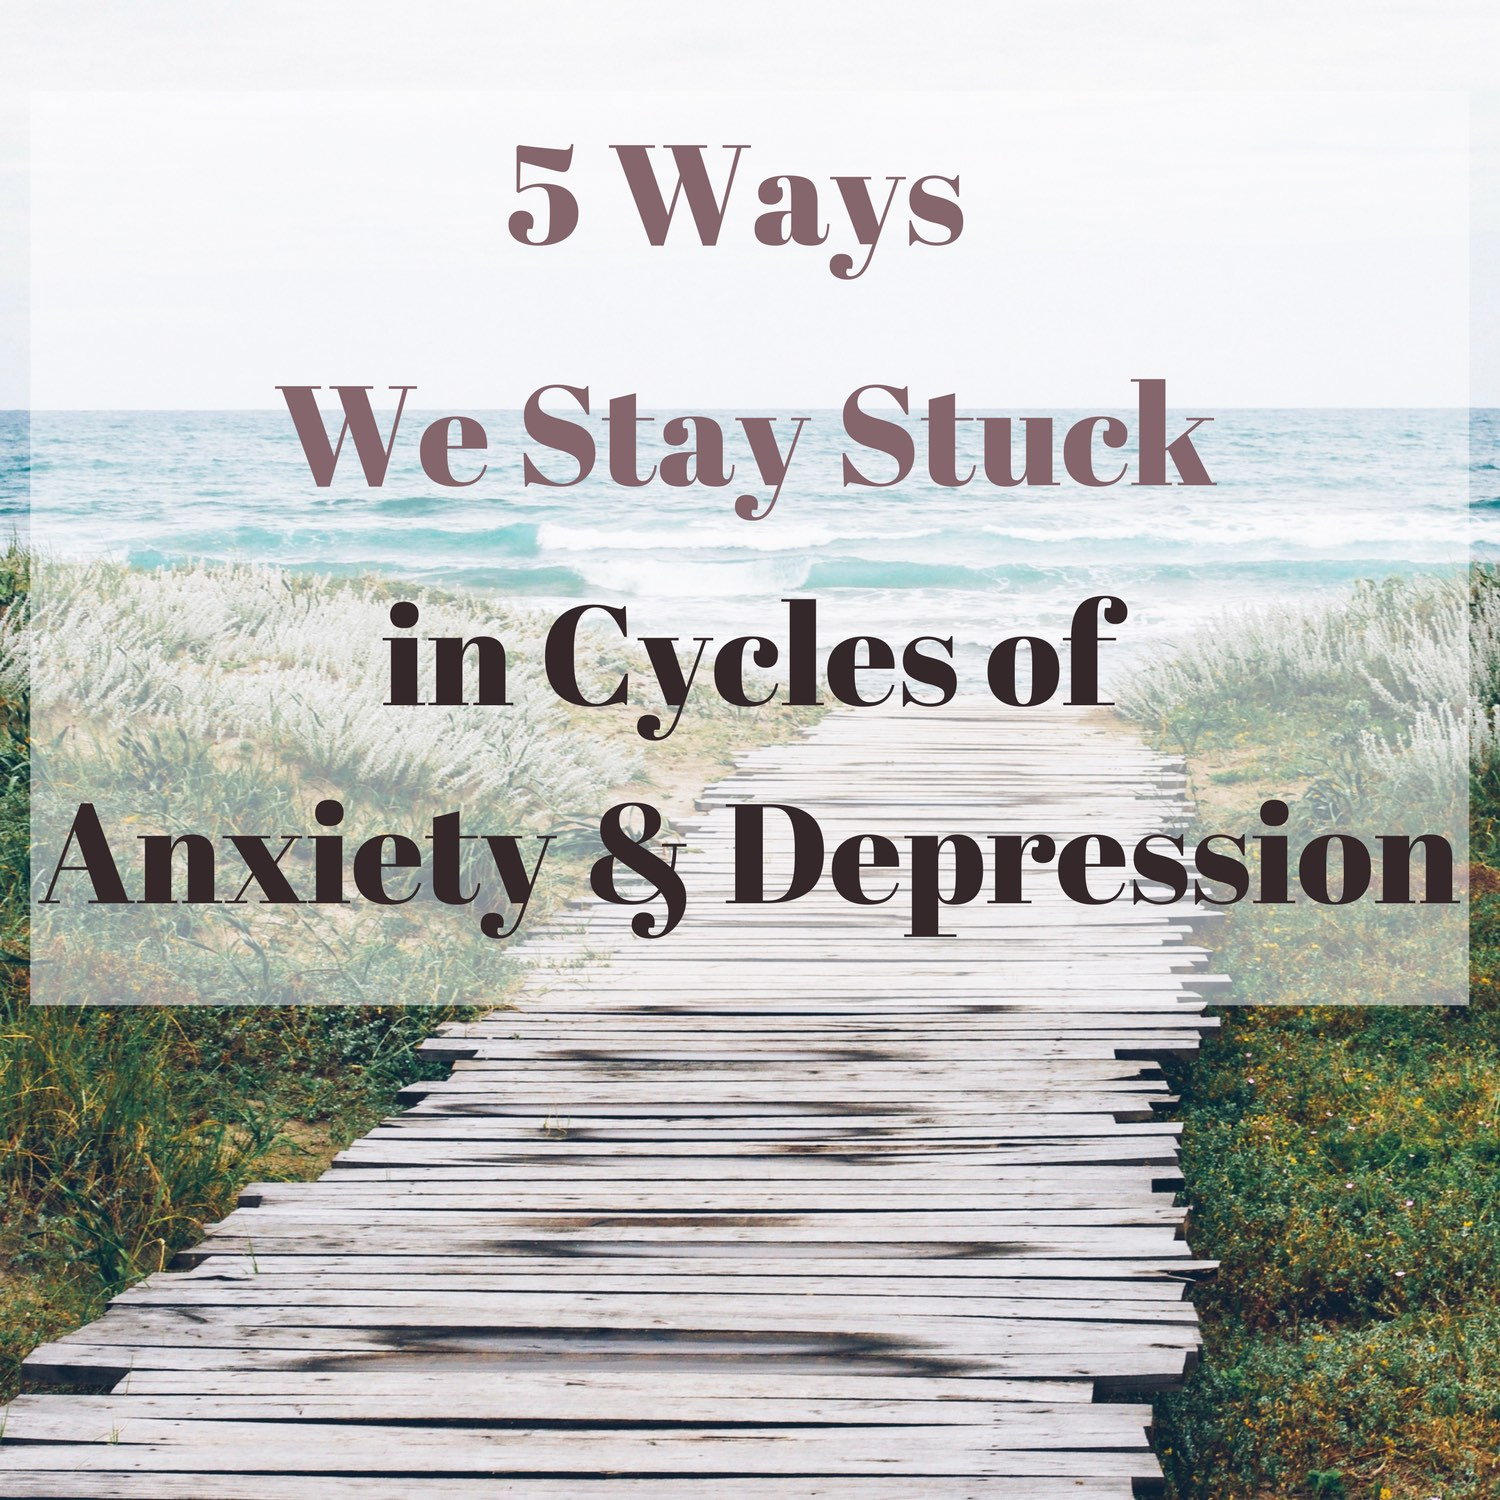 5 Ways we stay stuck in cycles of Anxiety in Depression - psychotherapy in NYC